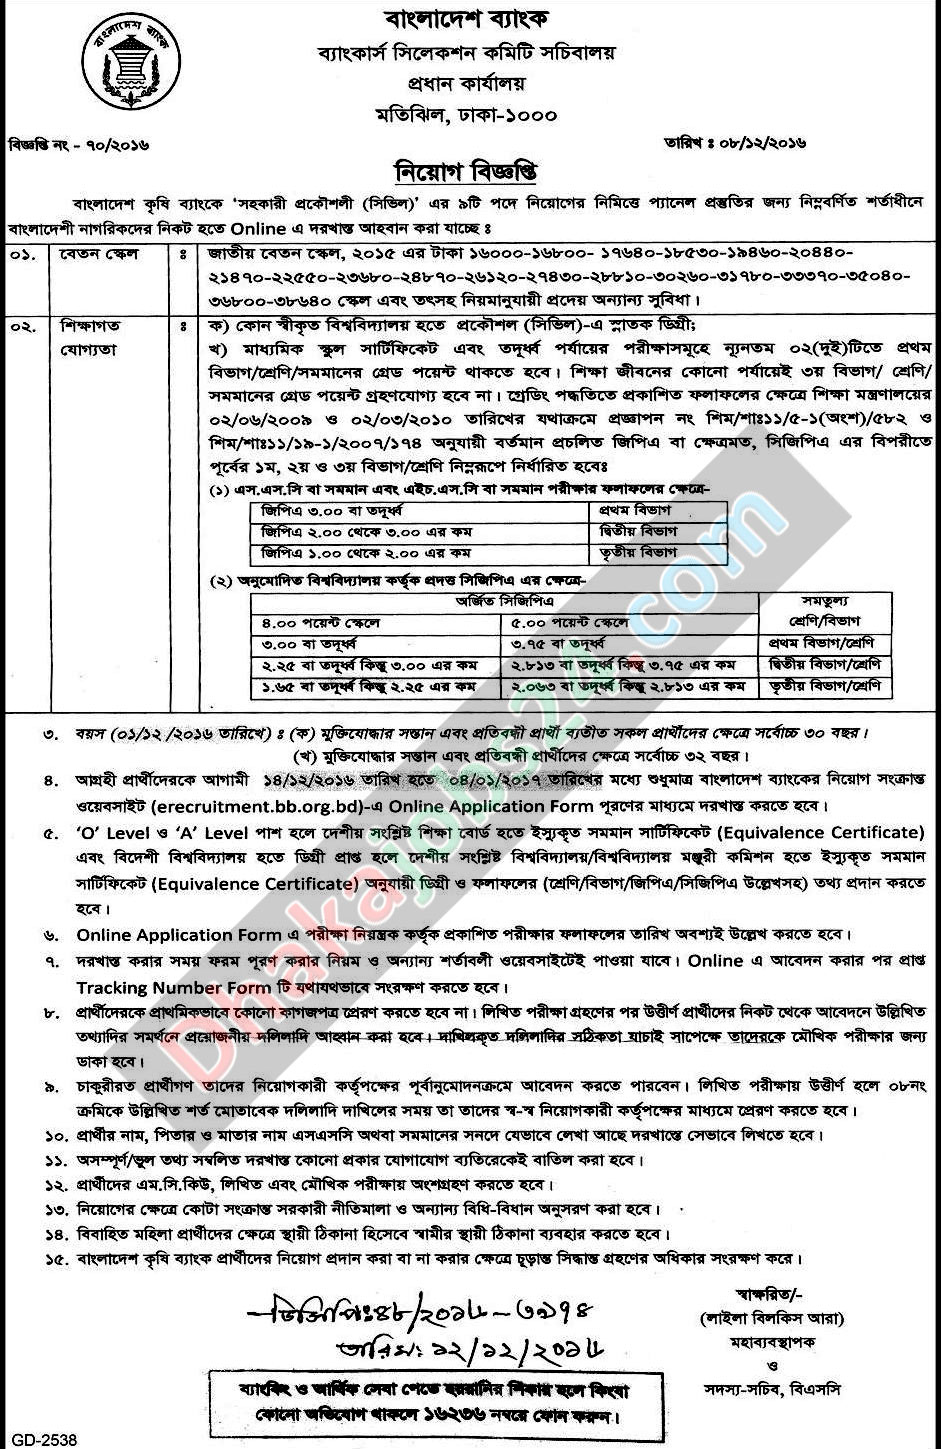 Krishi Bank Officer Job Circular 2017